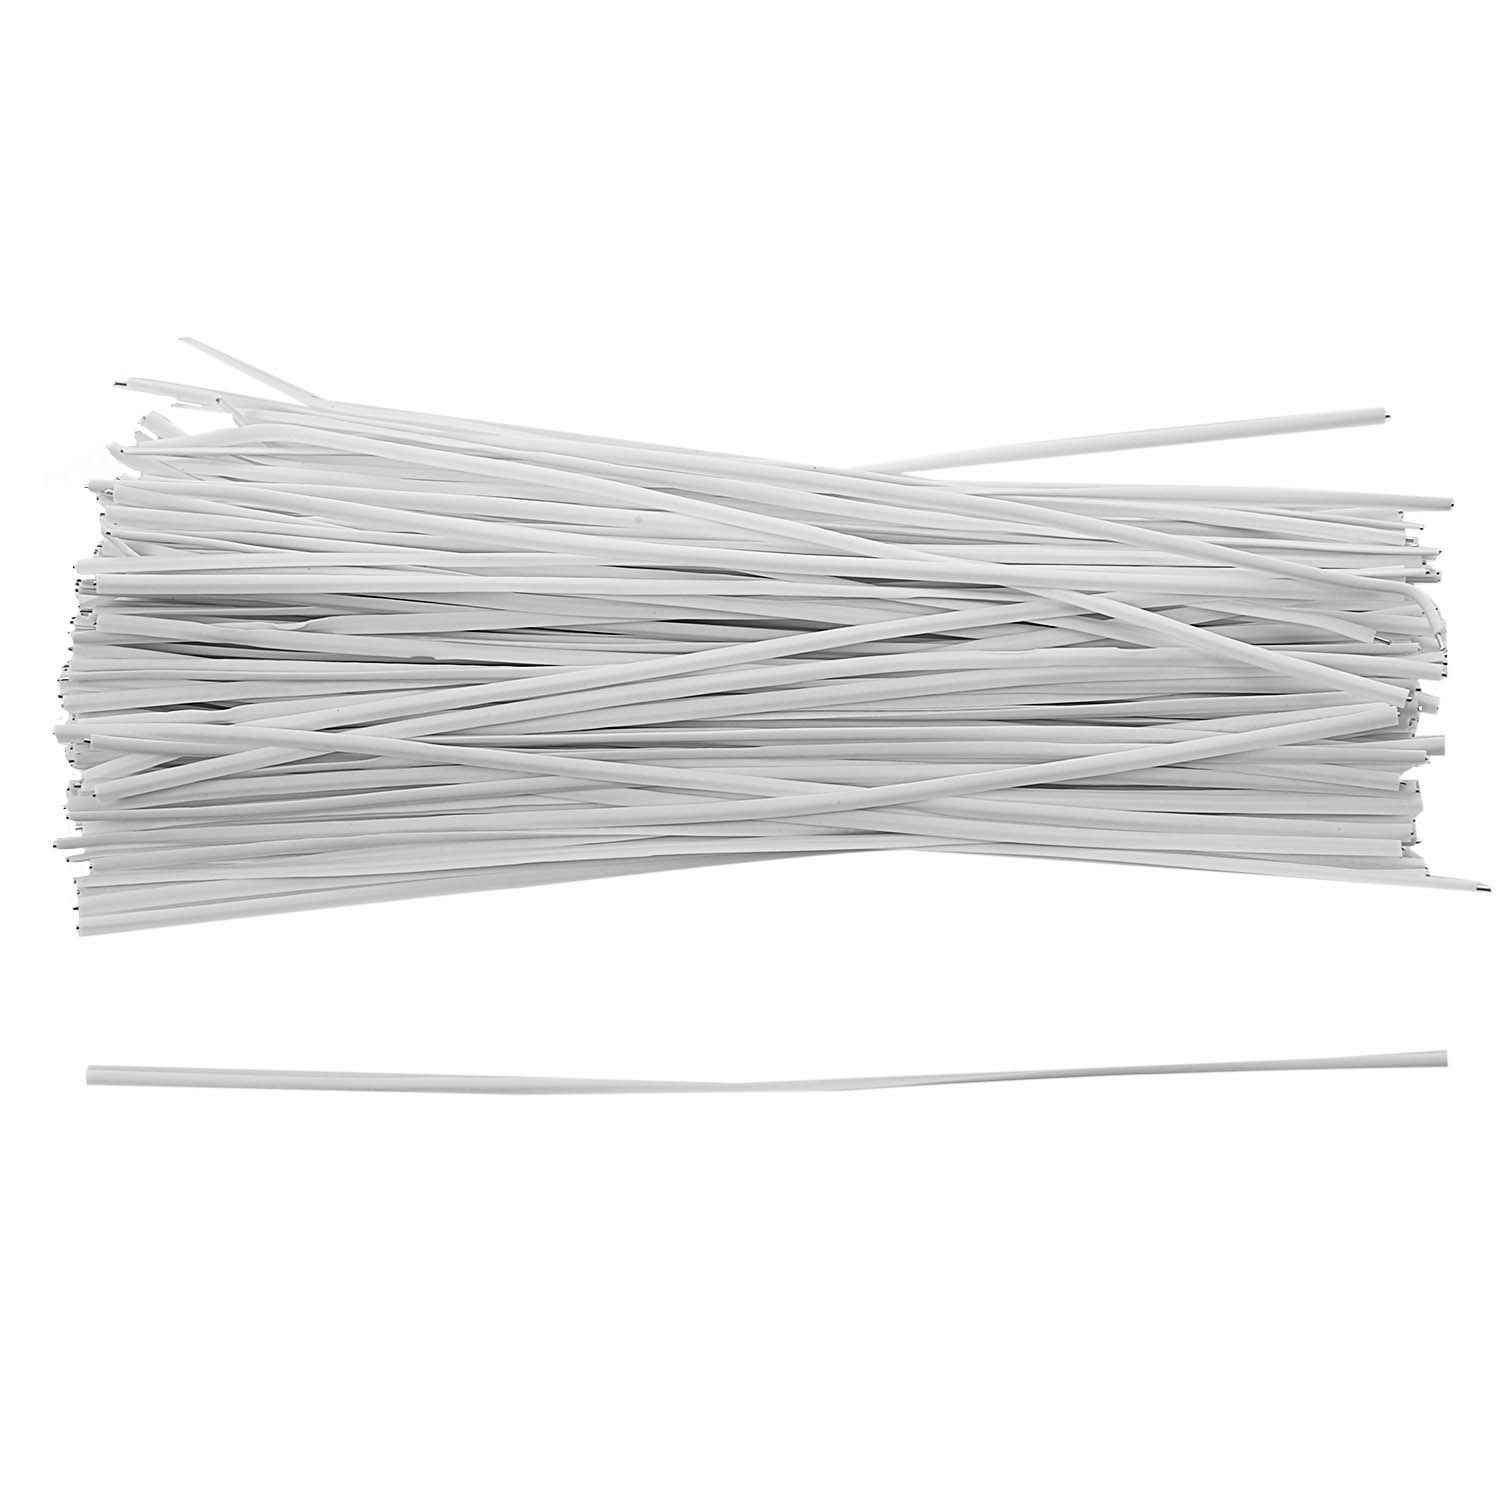 130pcs Cable Organizer Binding Packaging Wire Twist Ties White 150x2.2mm Dropshipping